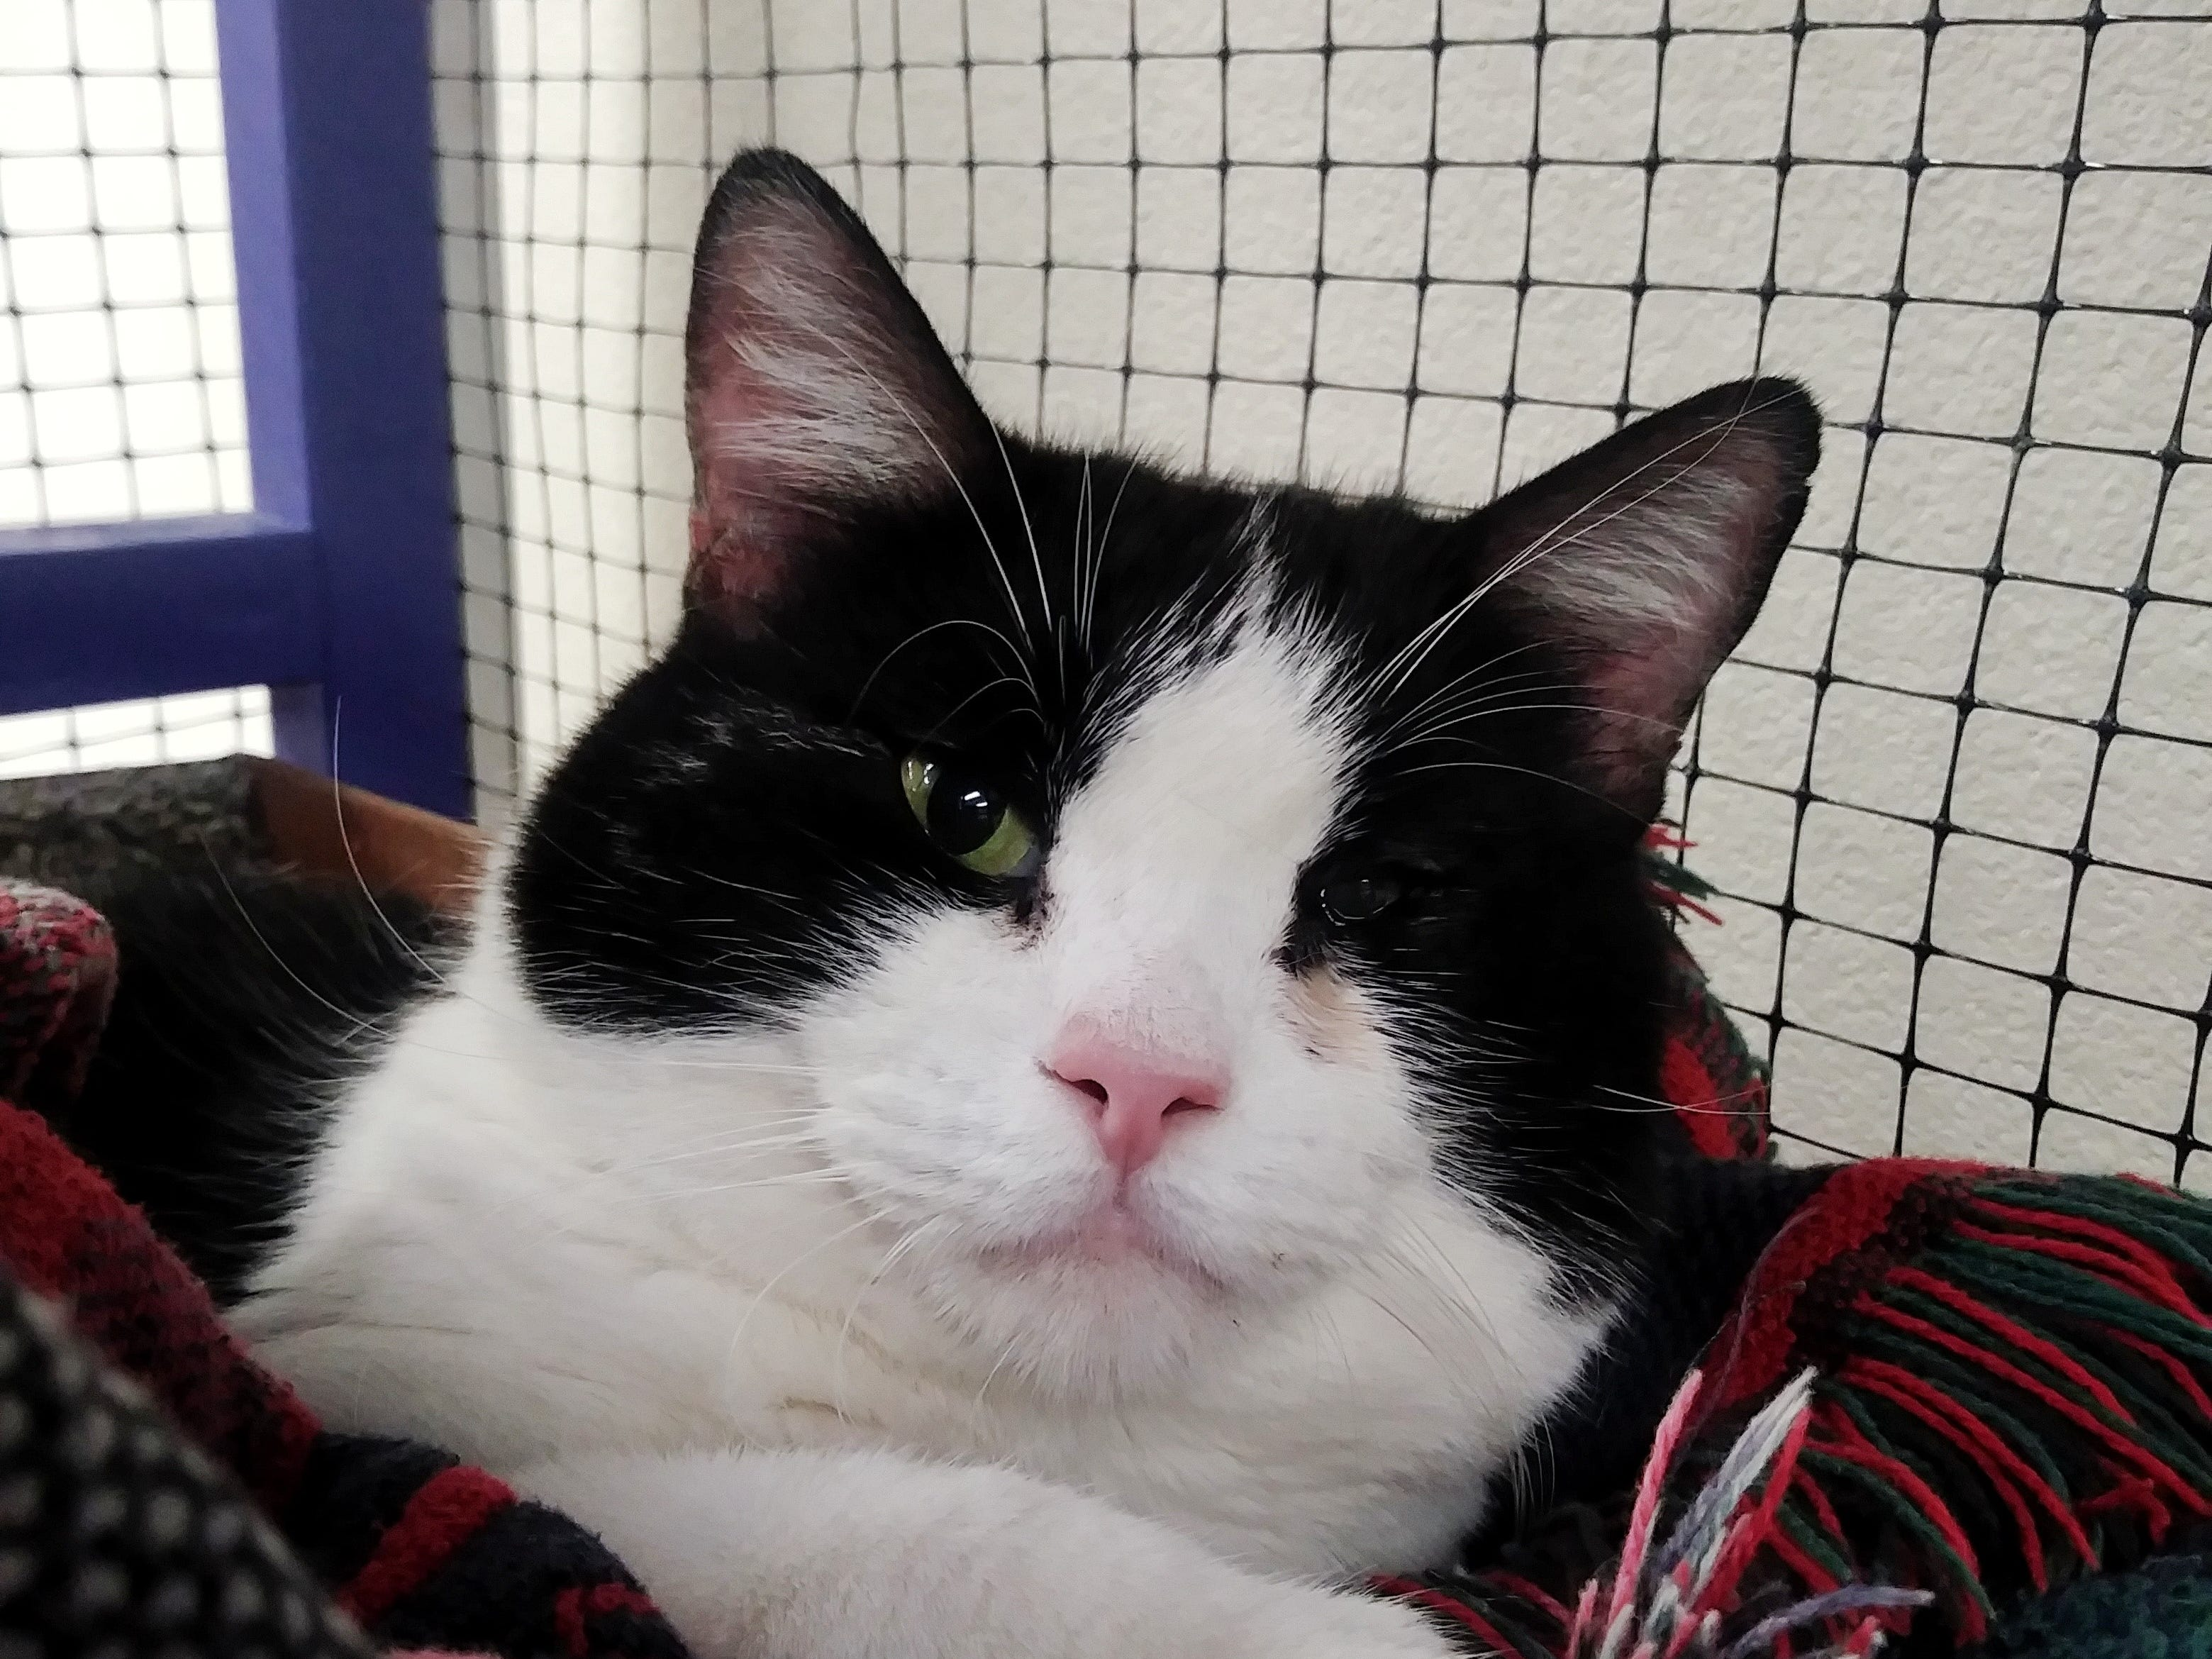 Tommy Boy is a large, adult male cat who is very friendly and will do anything for affection. Email Spay Neuter and Protect at Snap.spayneuterandprotect@gmail.com. Call 209-6966.